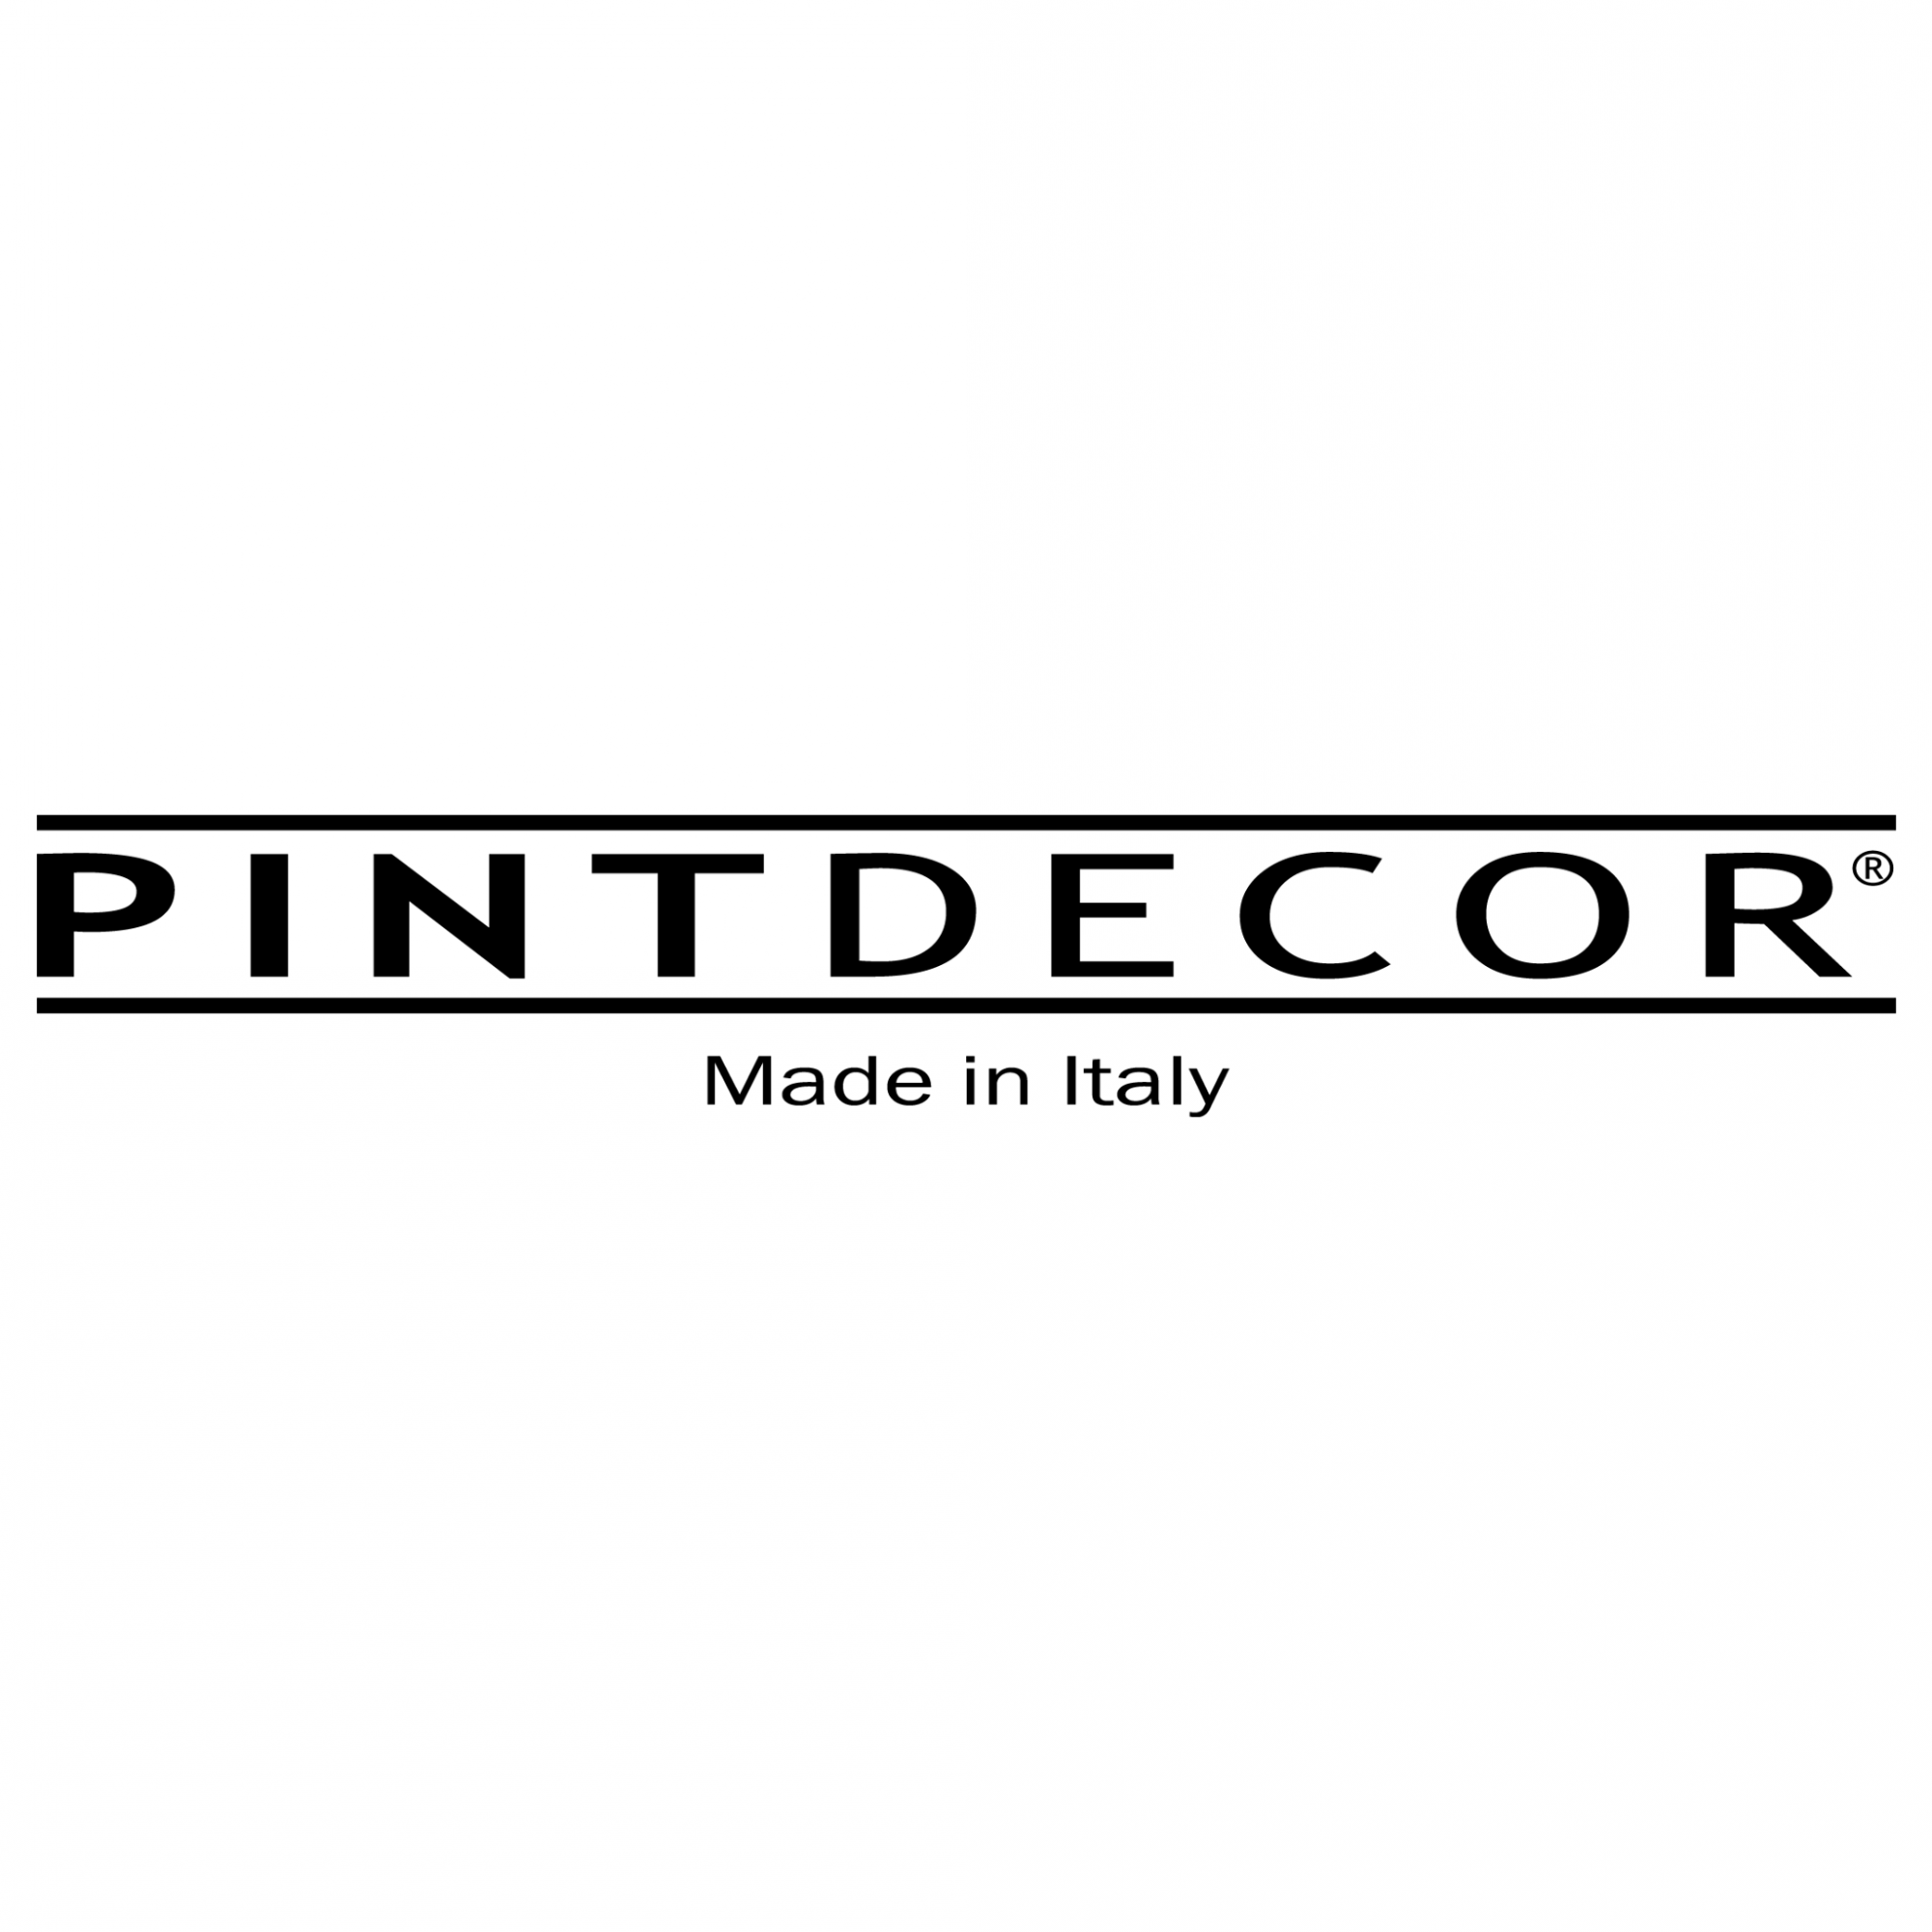 PINTDECOR graphicollection